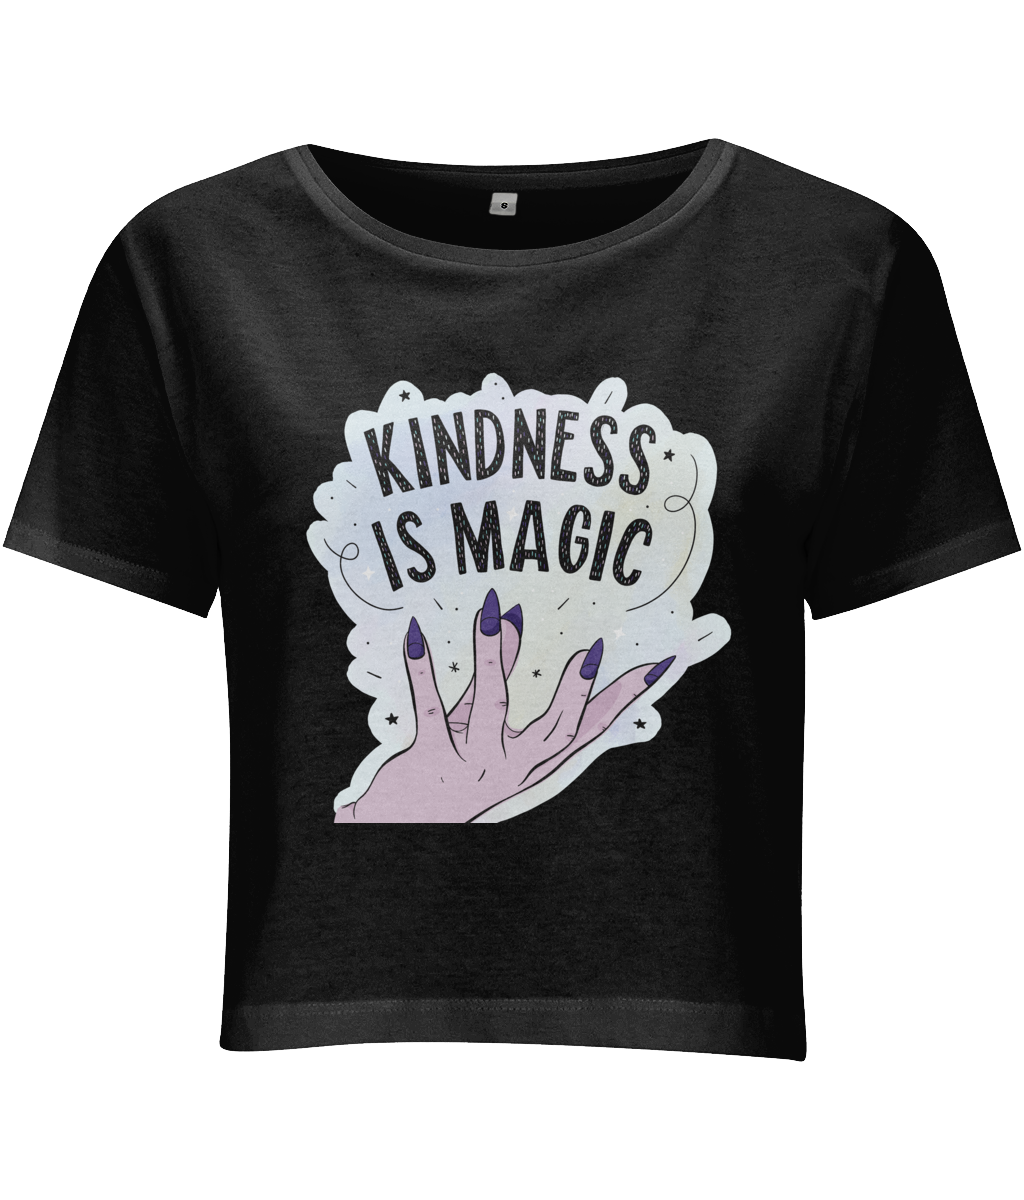 Kindness Is Magic Crop Top